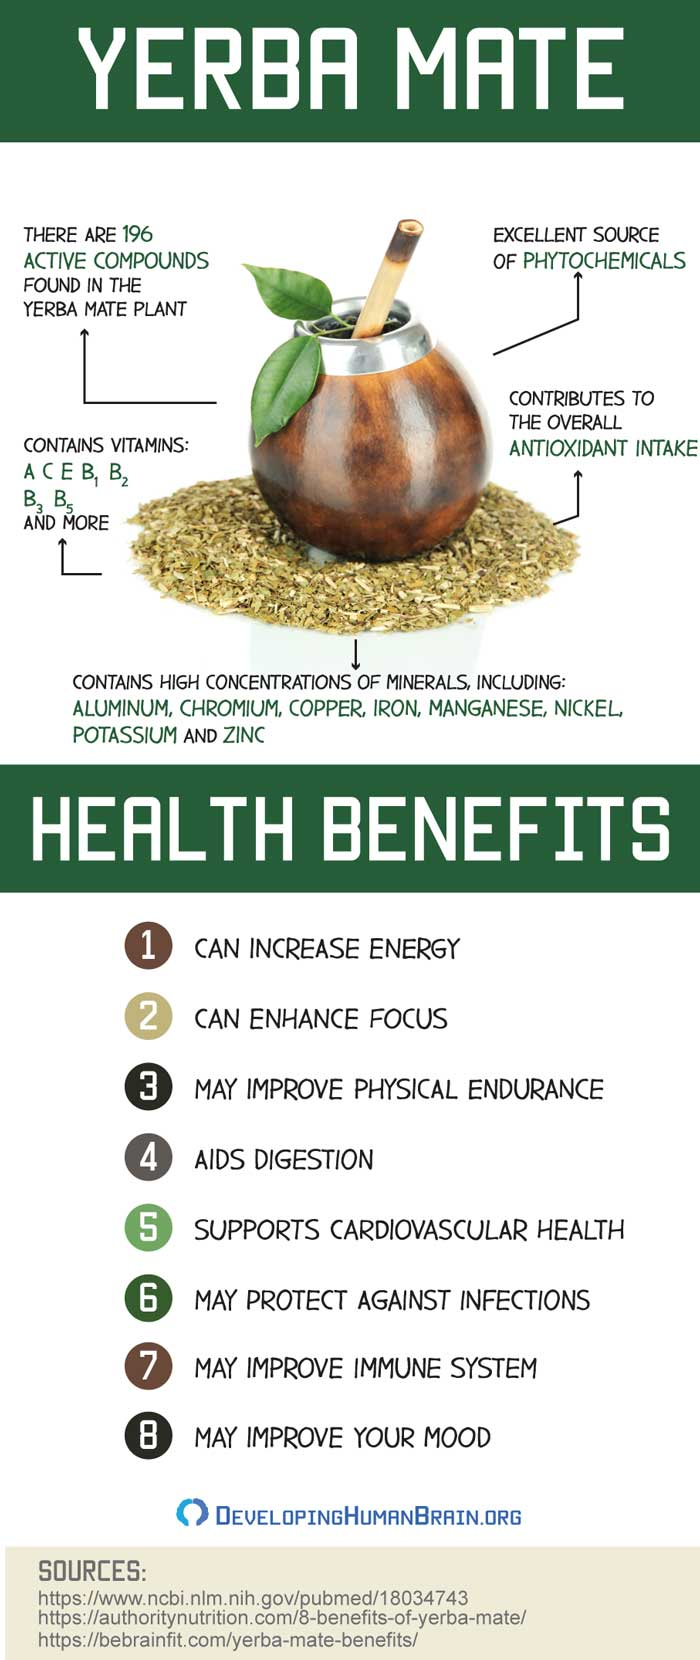 yerba mate health benefits infographic